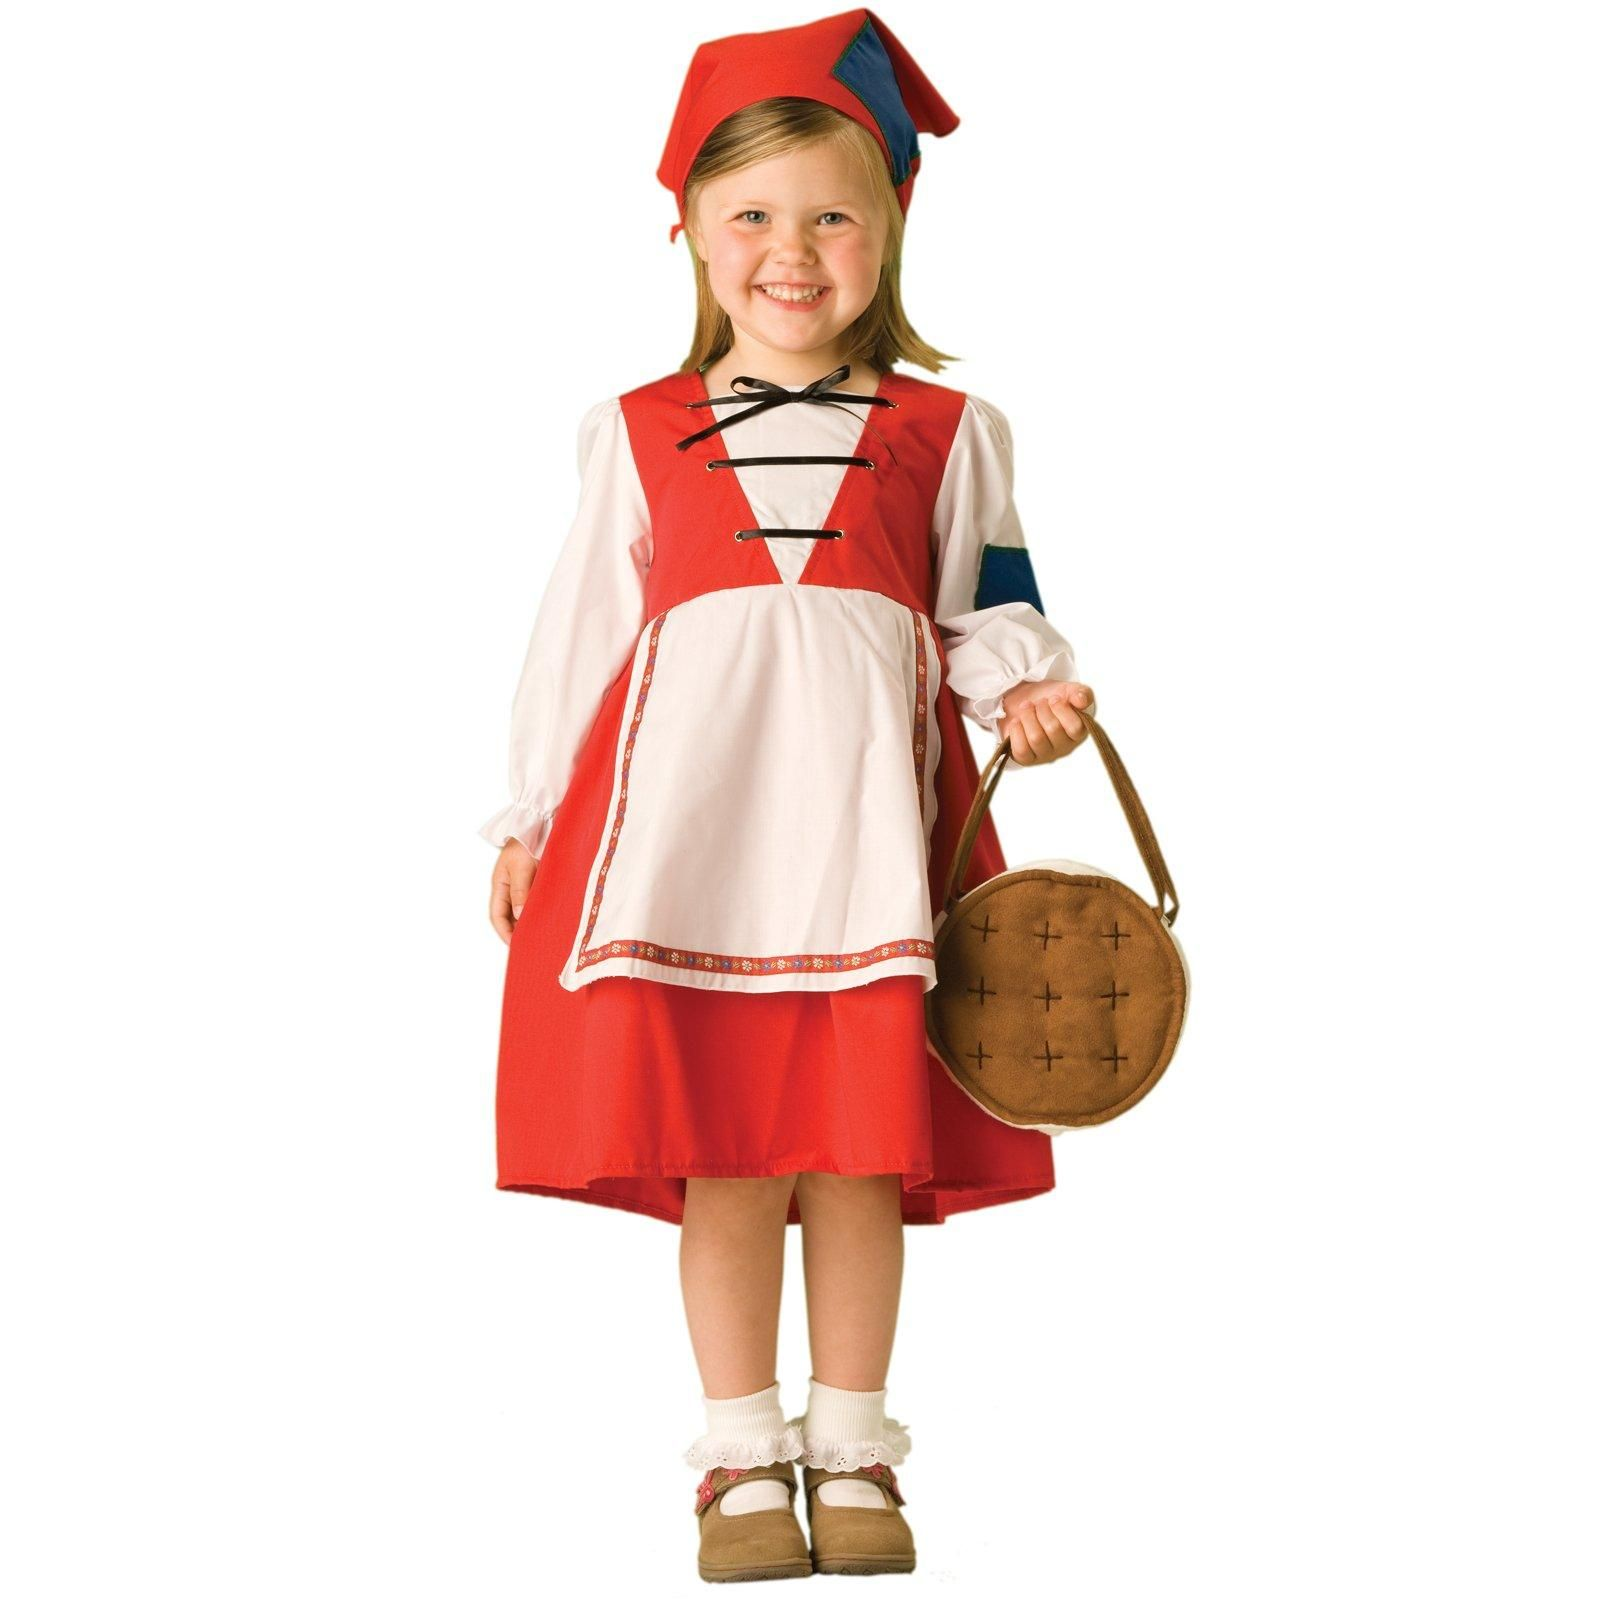 Gretel Fairytale Classics Toddler Costume from Buycostumes.com  sc 1 st  Pinterest & Oktoberfest Girl Adult Costume | Toddler costumes and Costumes